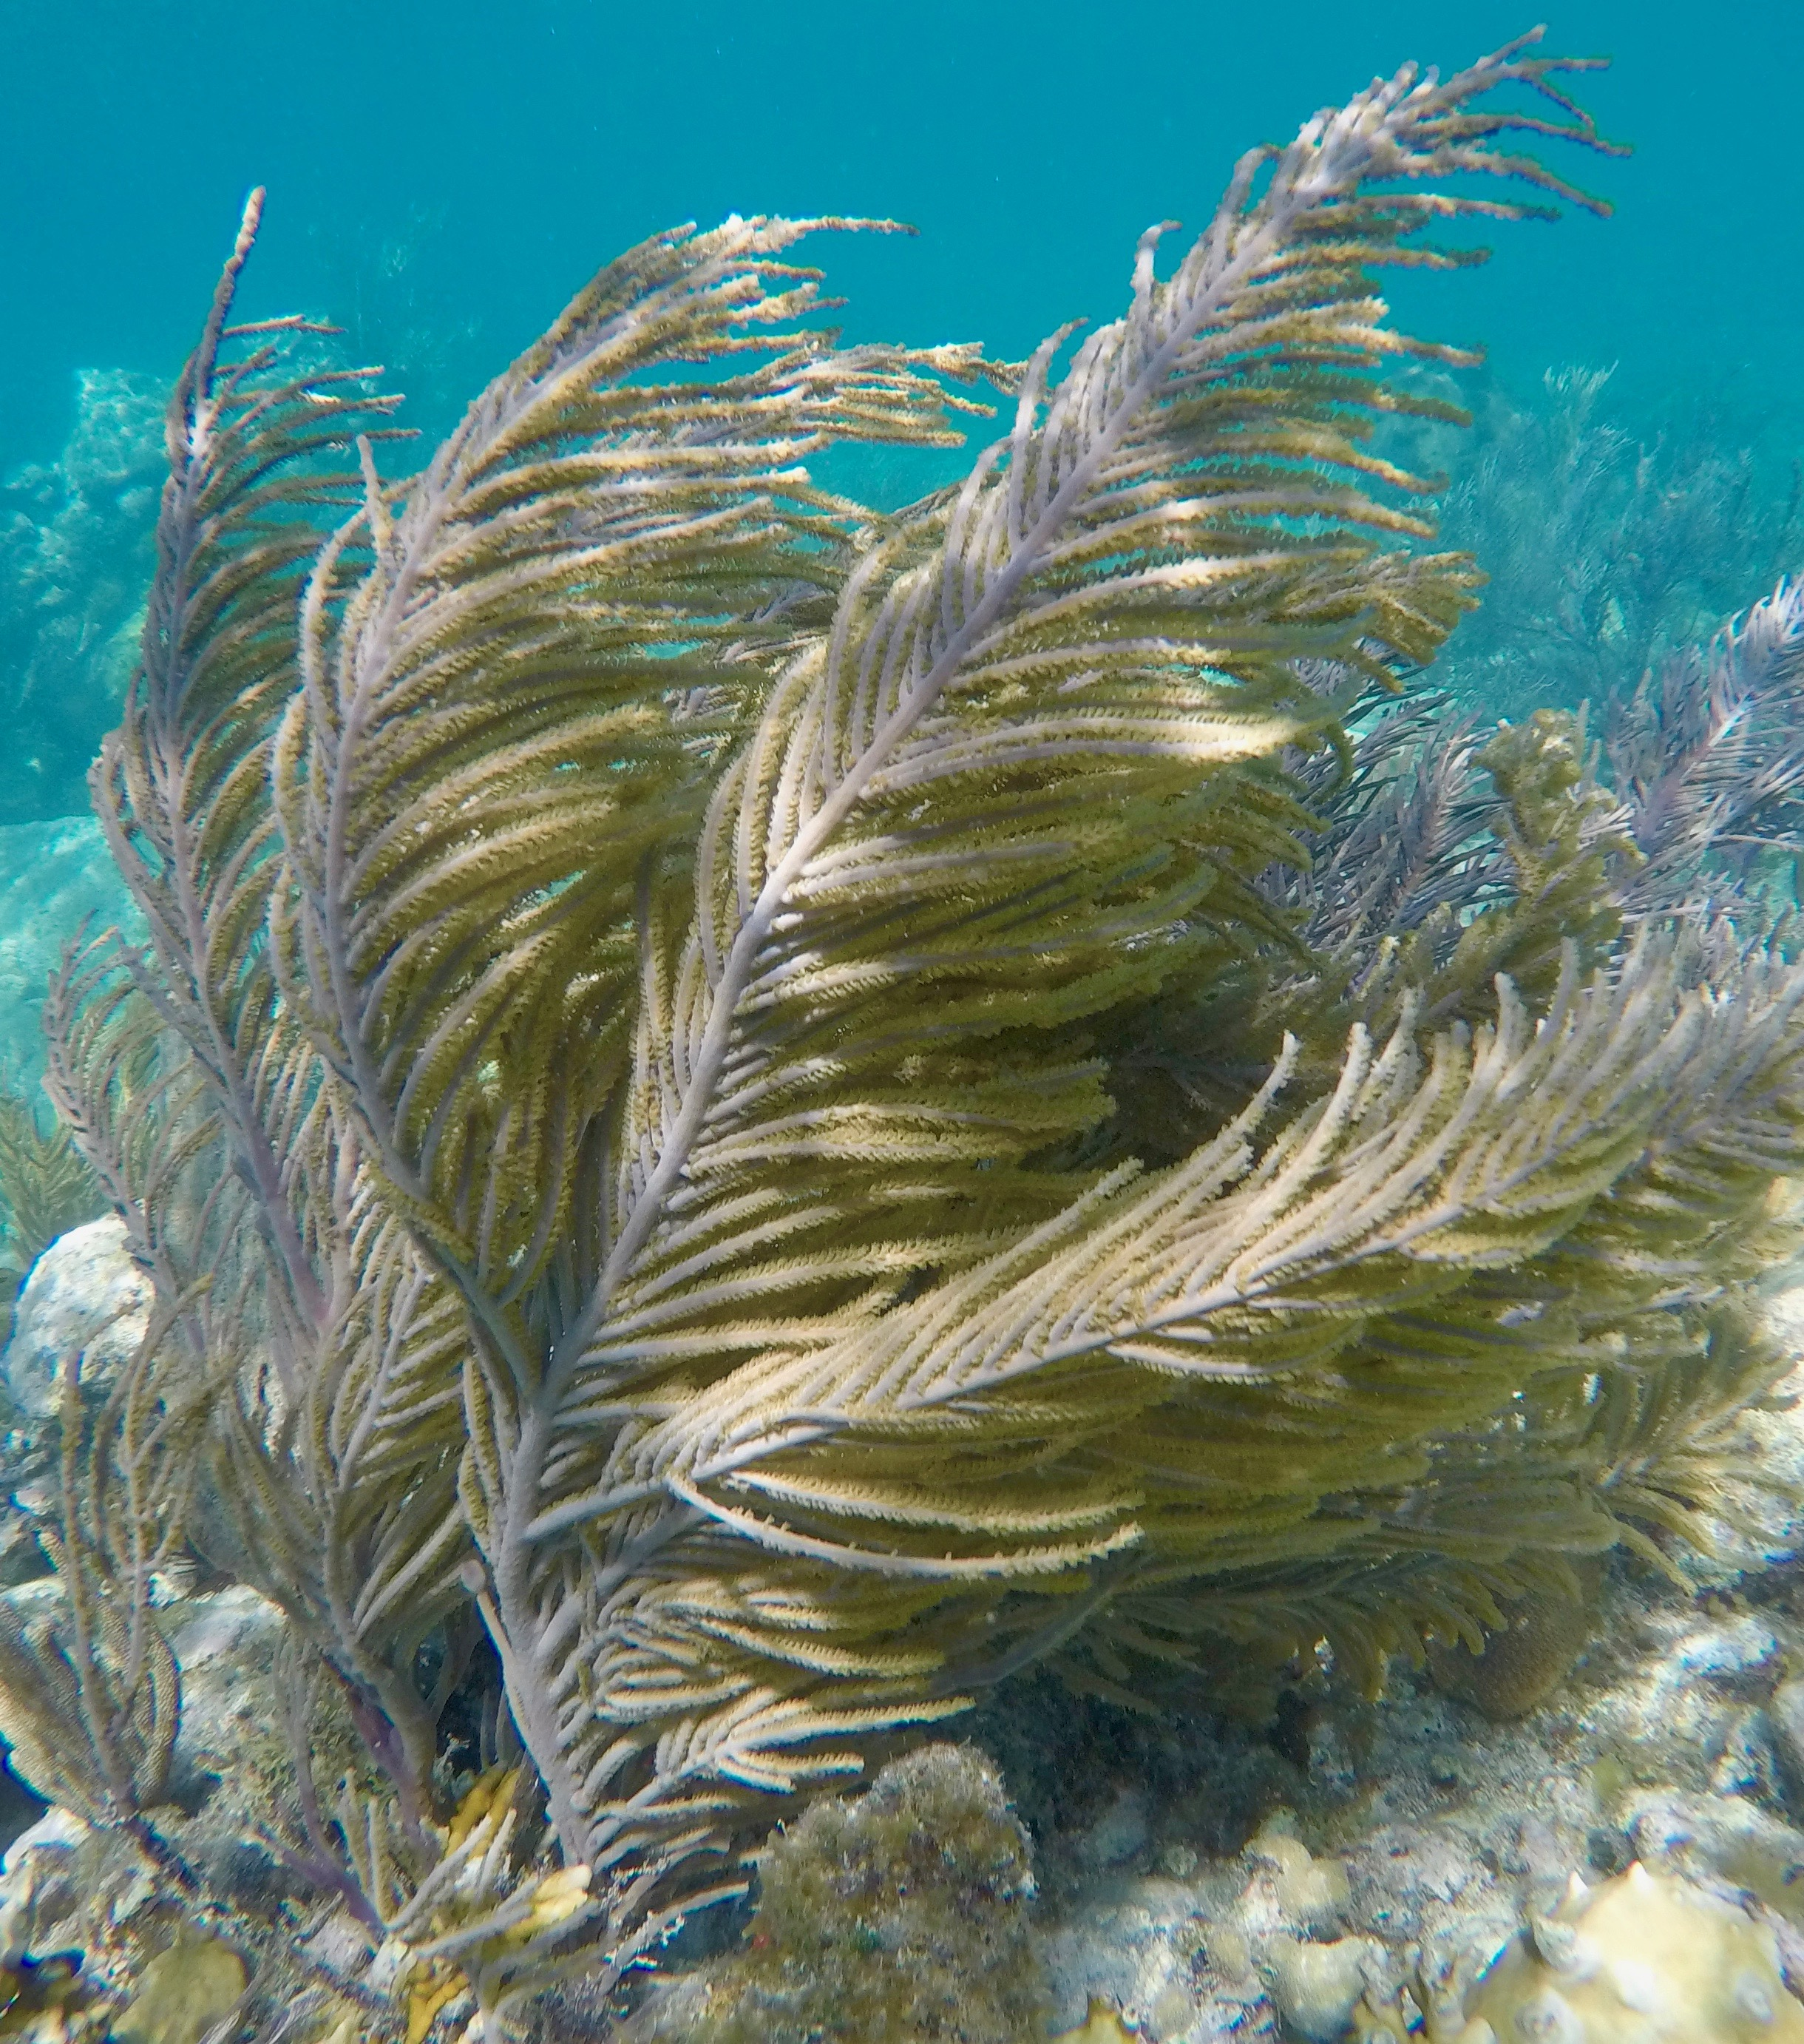 Soft Corals still abound